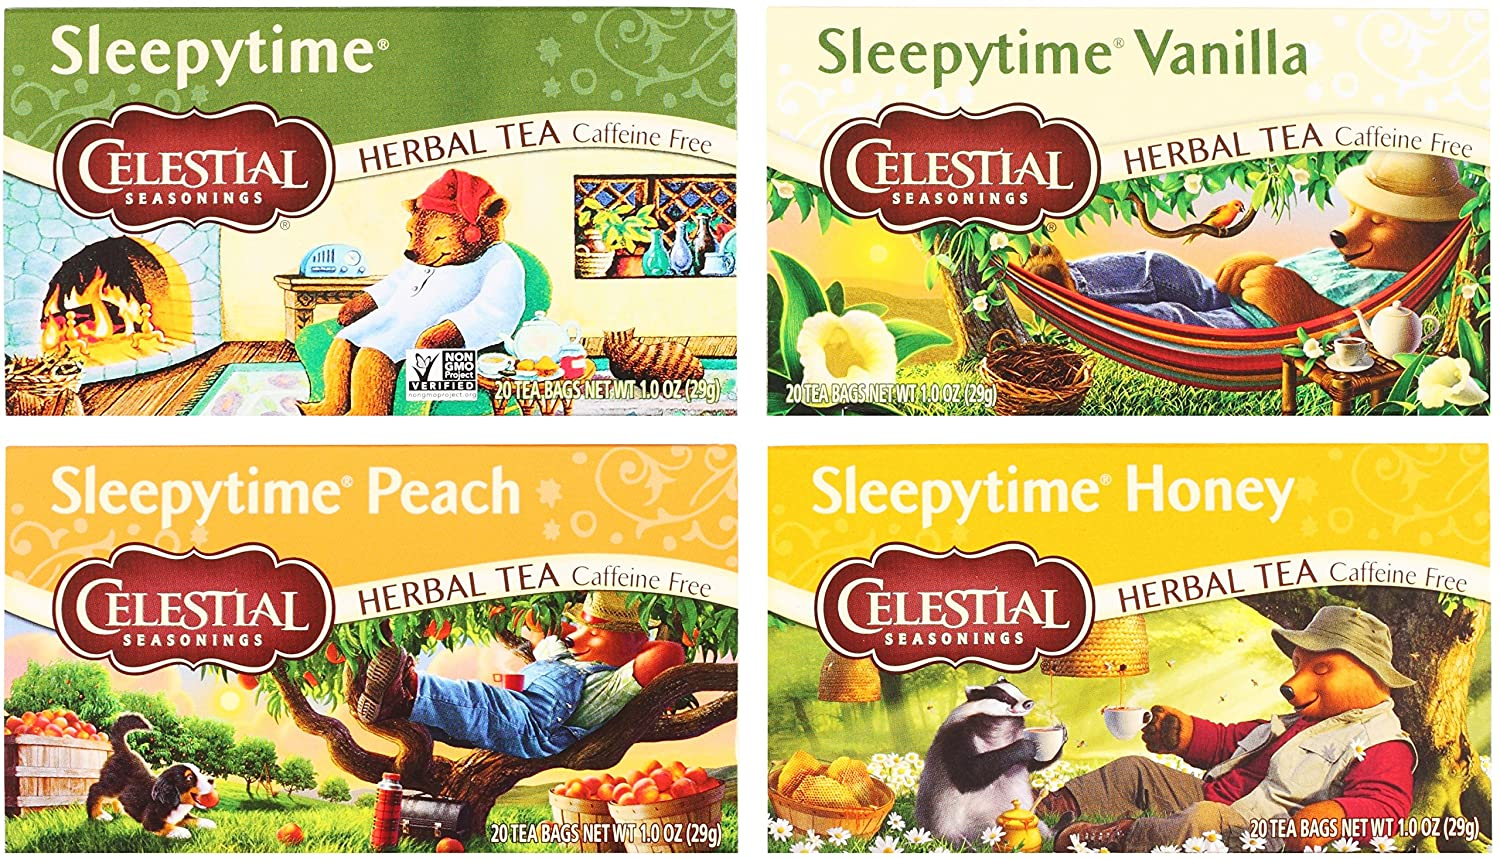 Celestial Seasonings Sleepytime Assorted Tea Bundle: (1) Sleepytime Classic, (1) Sleepytime Vanilla, (1) Sleepytime Peach, and (1) Sleepytime Honey (4 Total Boxes) - Gluten Free & Caffeine Free